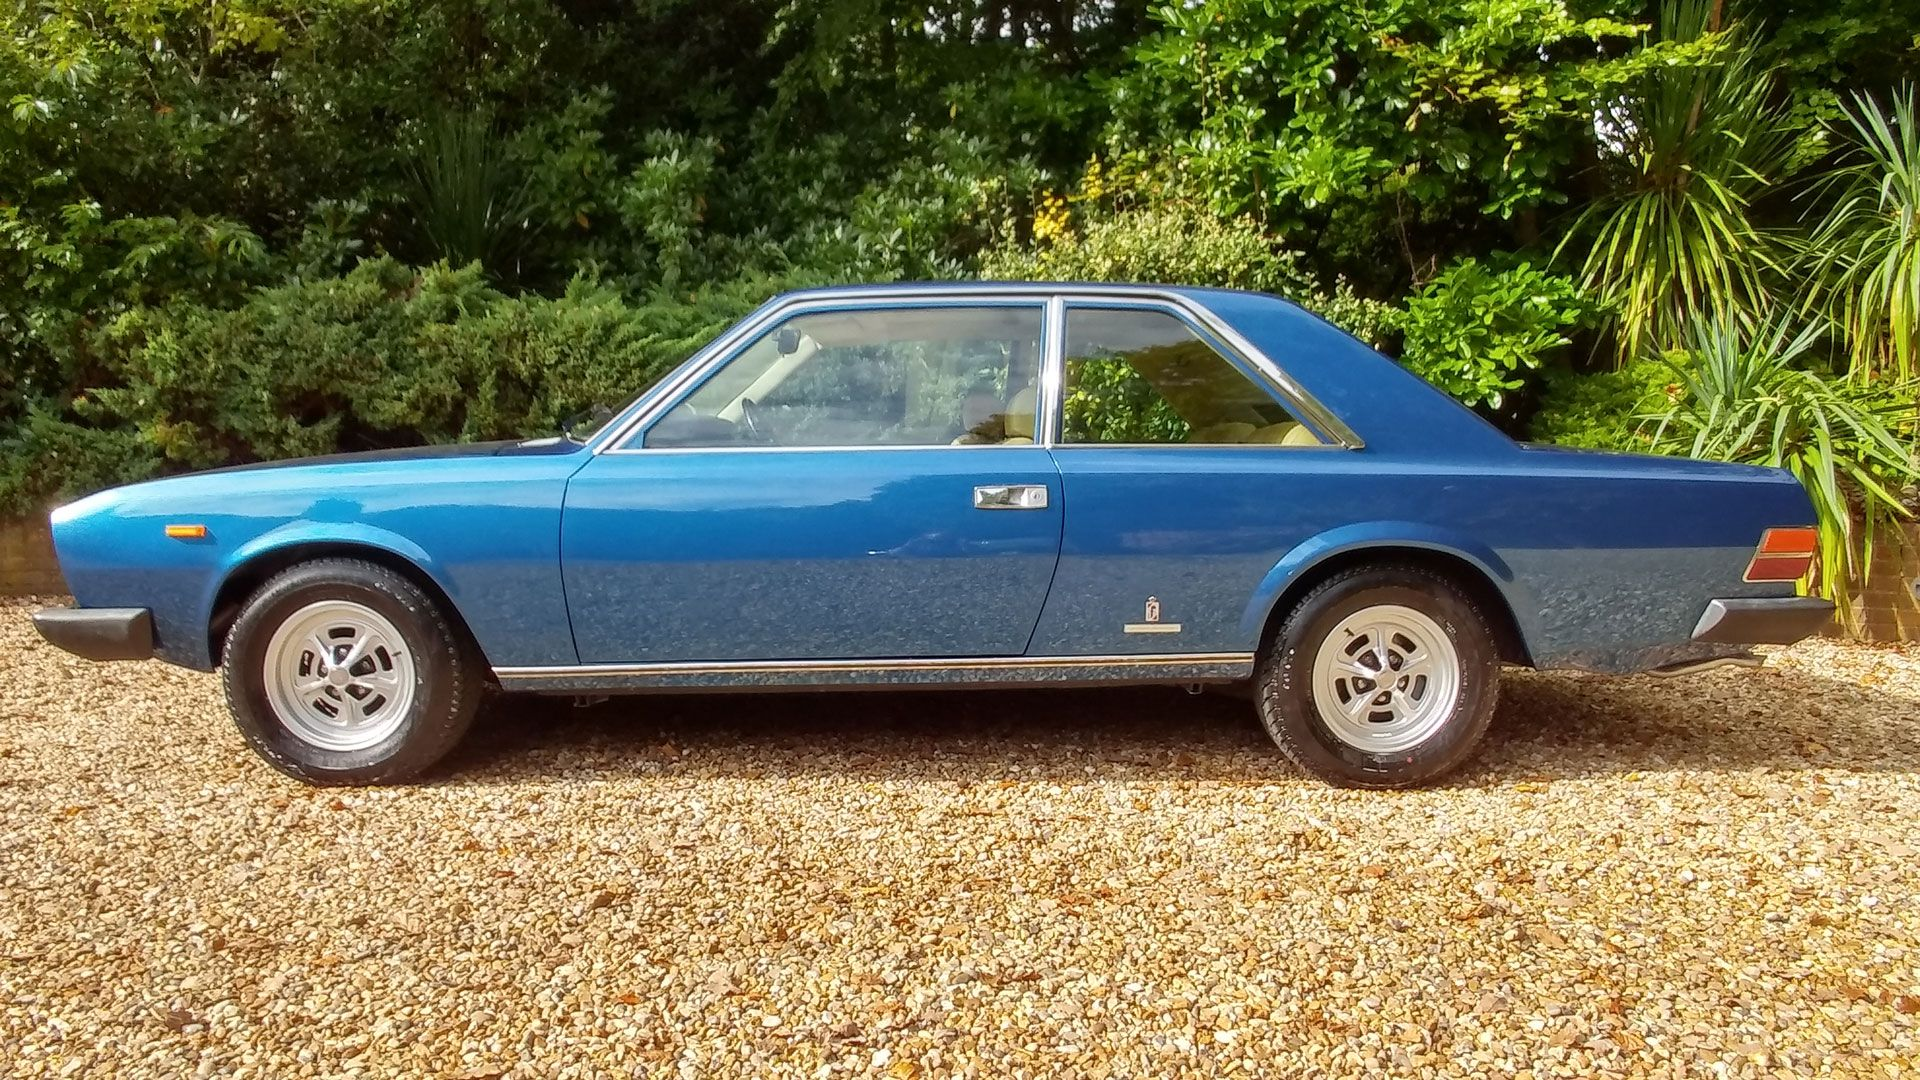 1977 fiat 130 coupe for sale in london 24 995 gpb lca. Black Bedroom Furniture Sets. Home Design Ideas